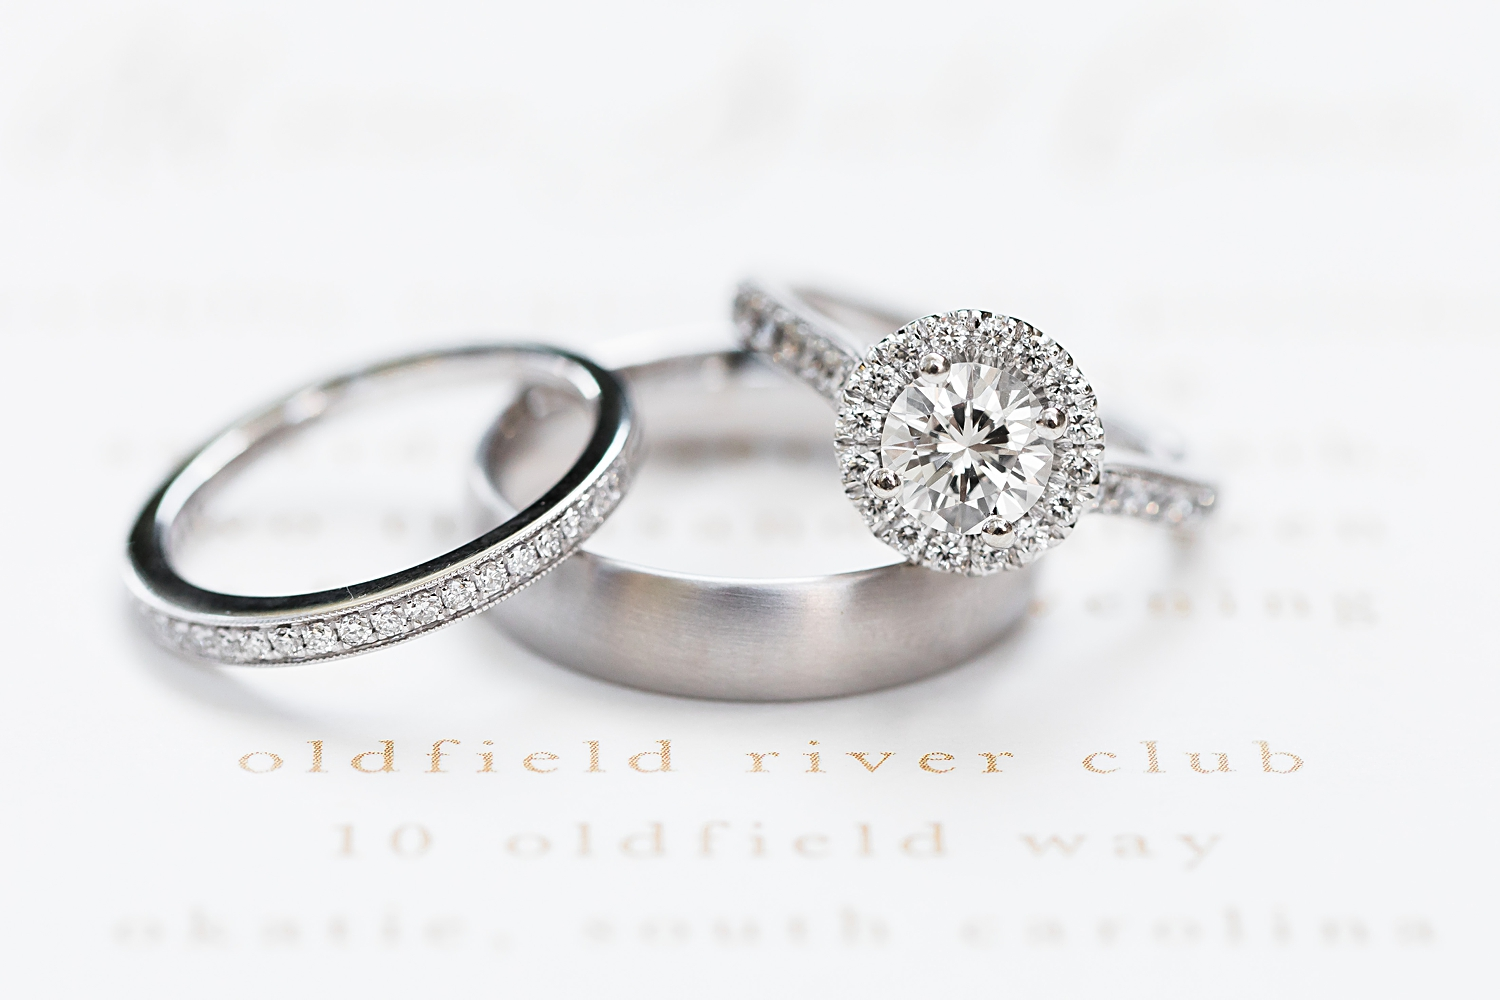 oldfield-river-club-wedding-photographer-jb-marie-photography